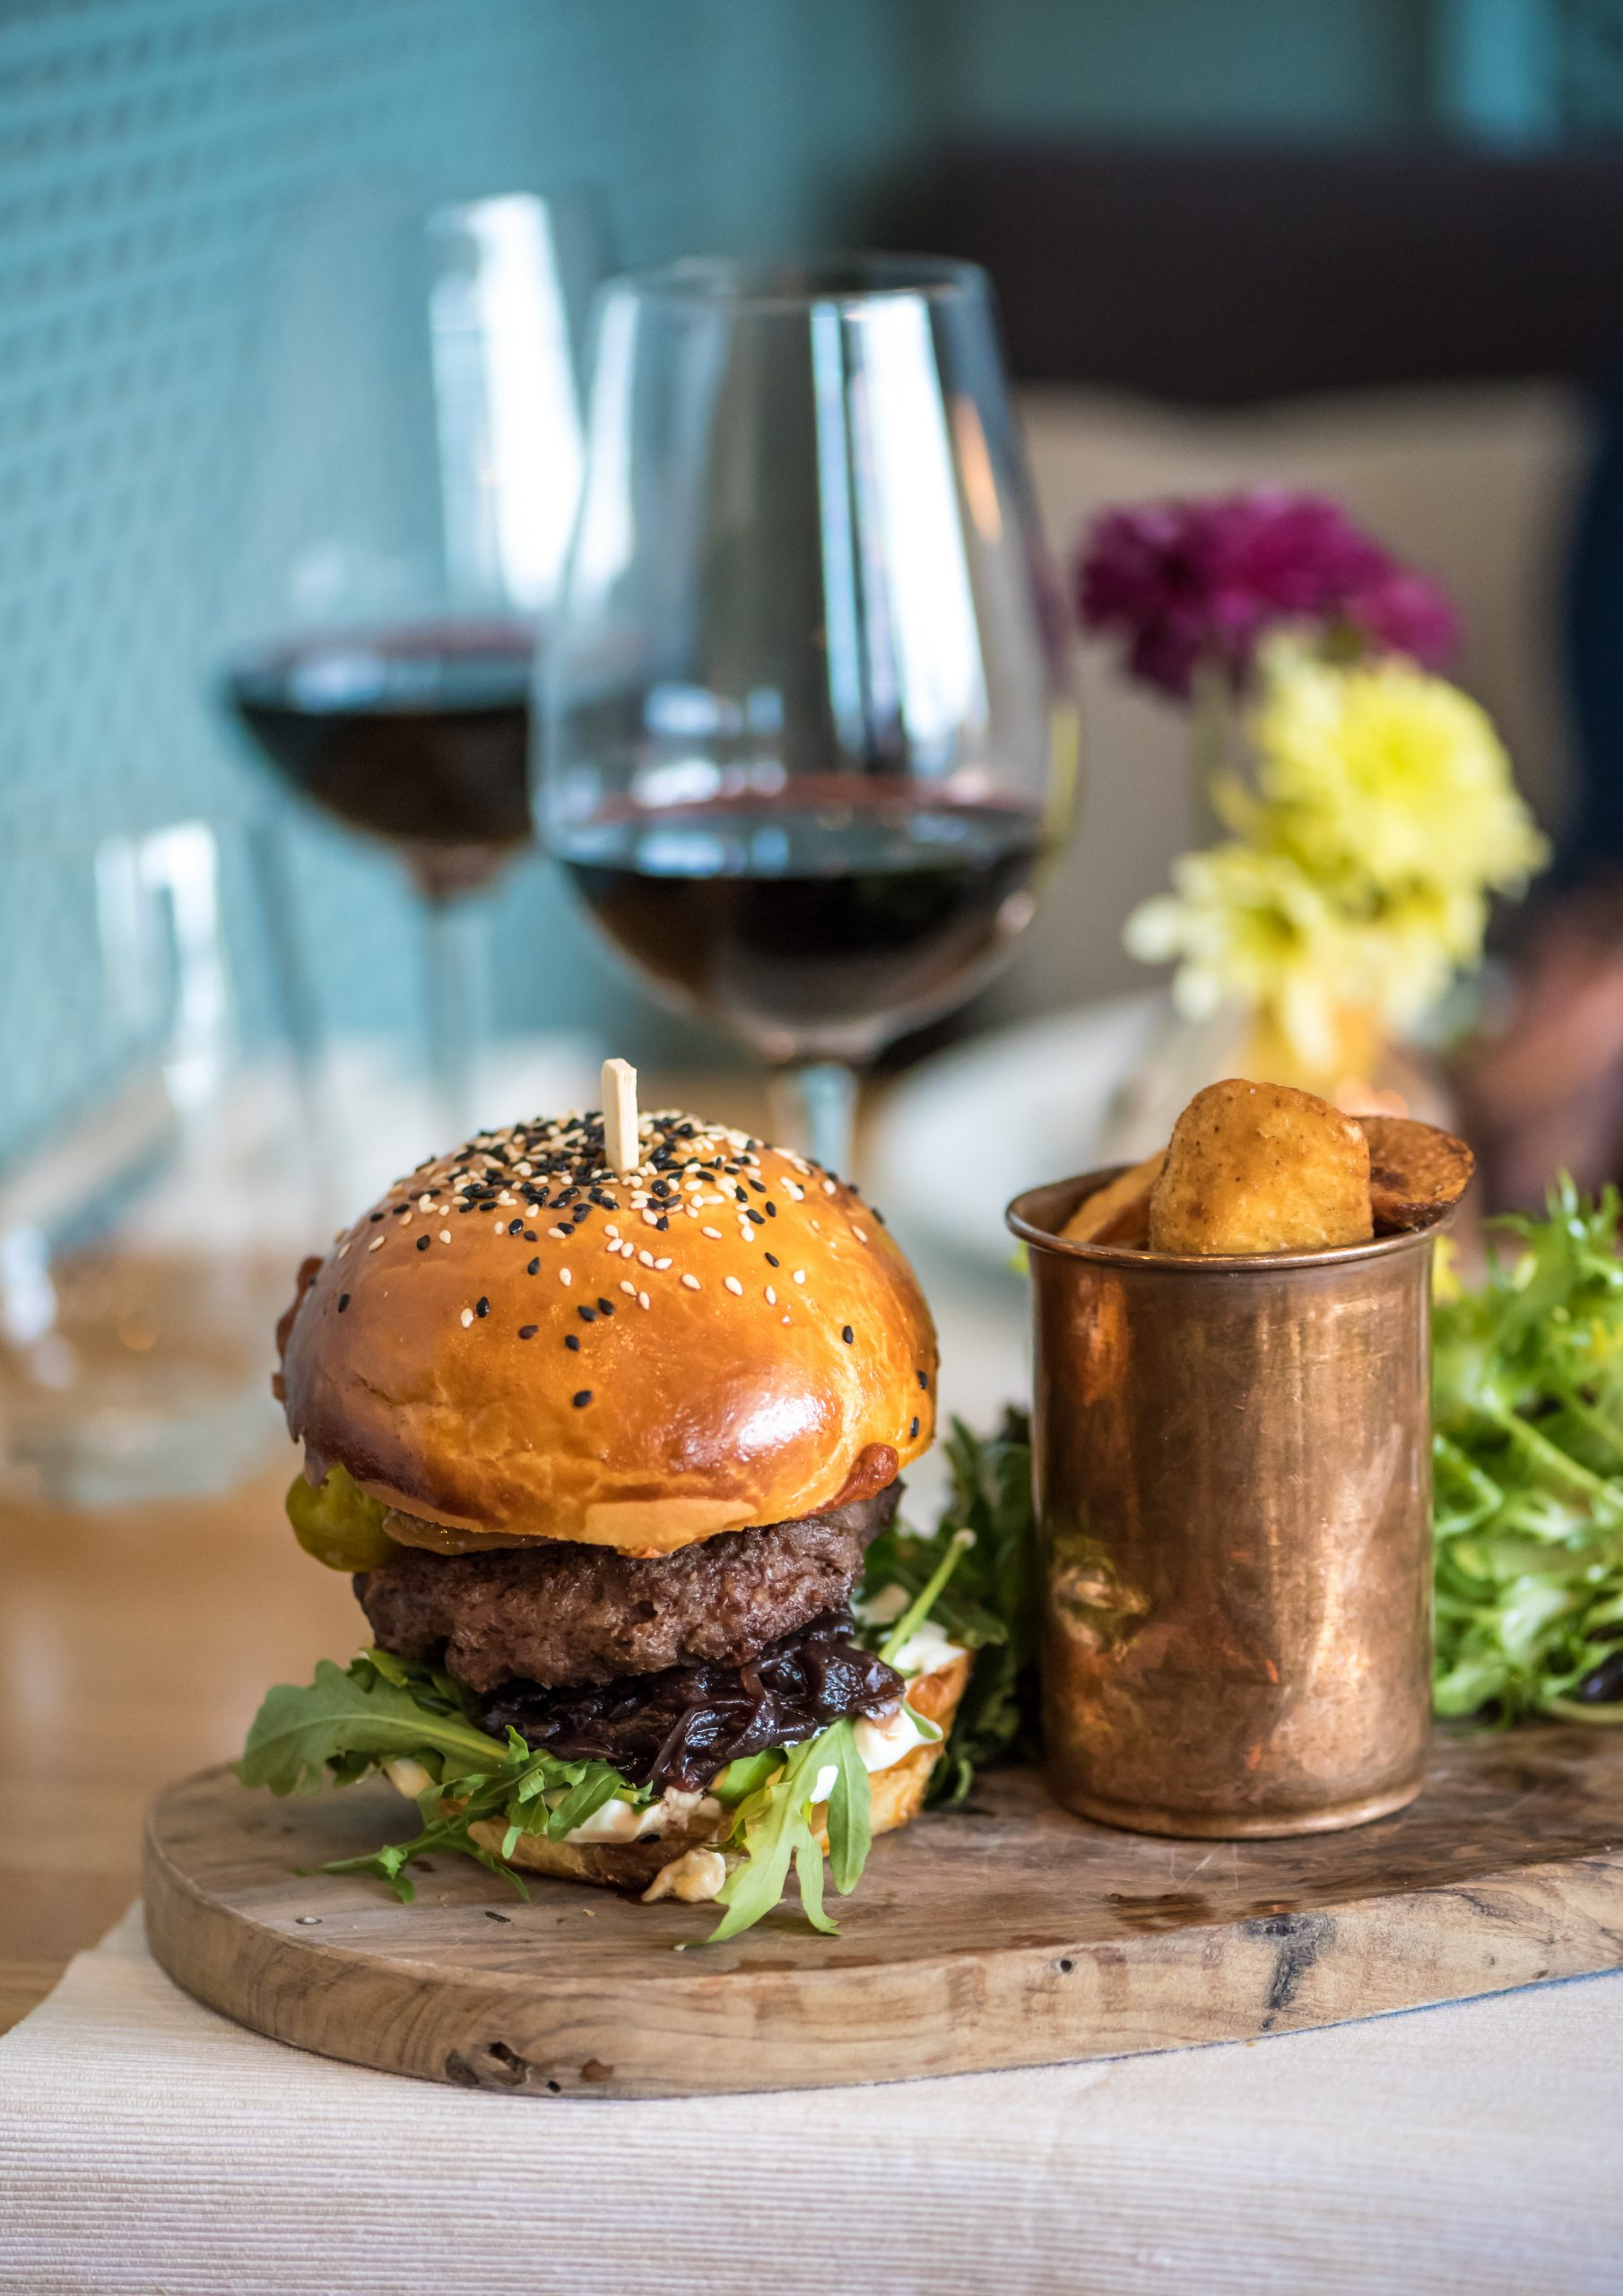 An american beef burger with fried potatoes and red wine